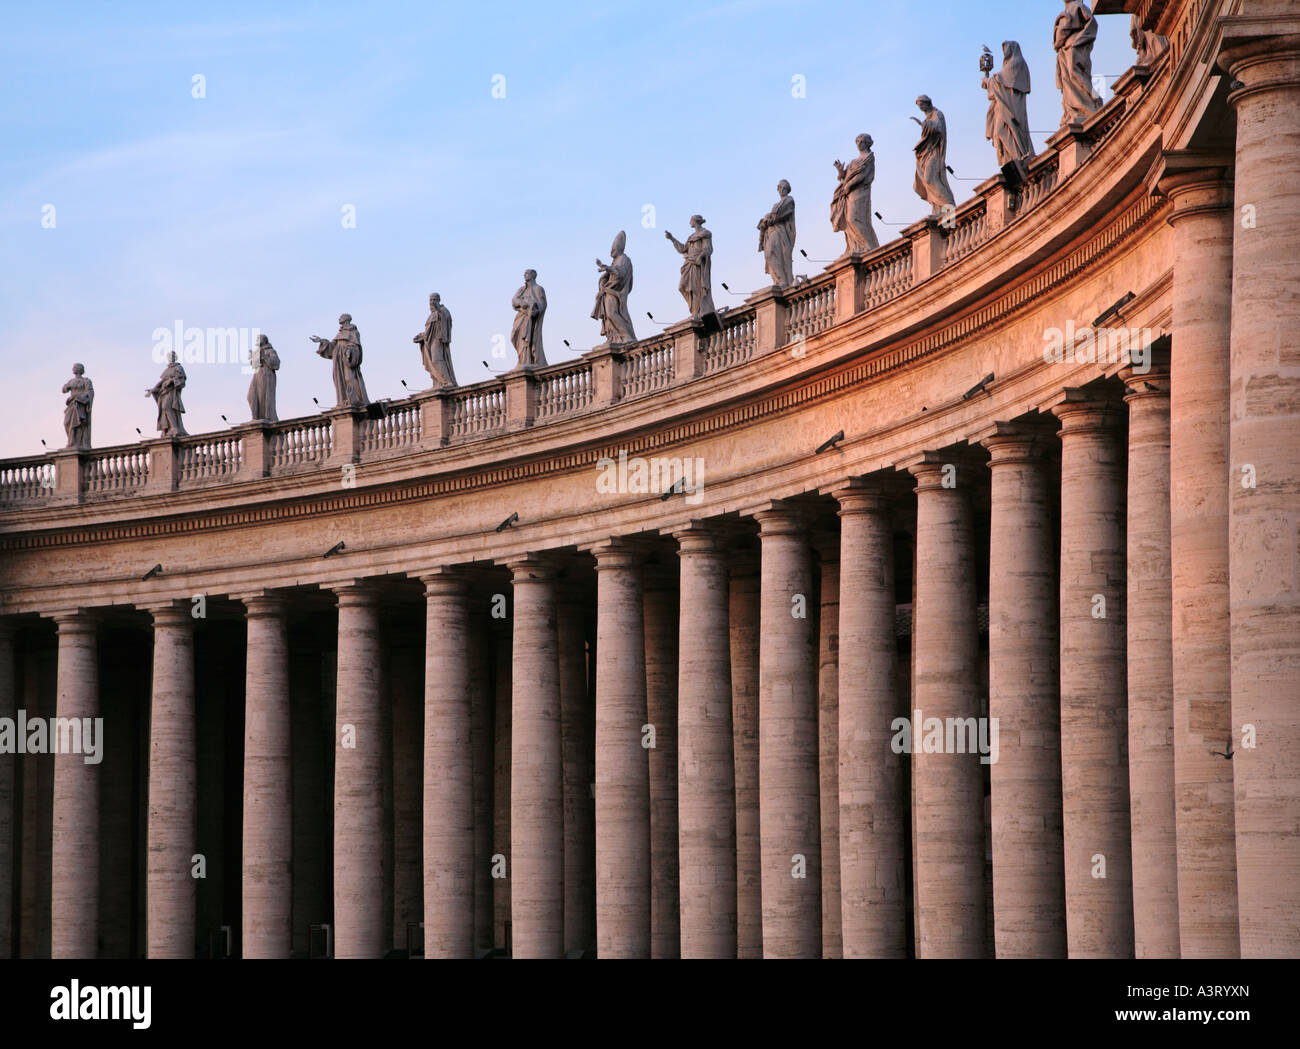 Detail of the Colonnade enclosing Saint Peter s Square designed by Bernini Vatican City Rome Italy - Stock Image